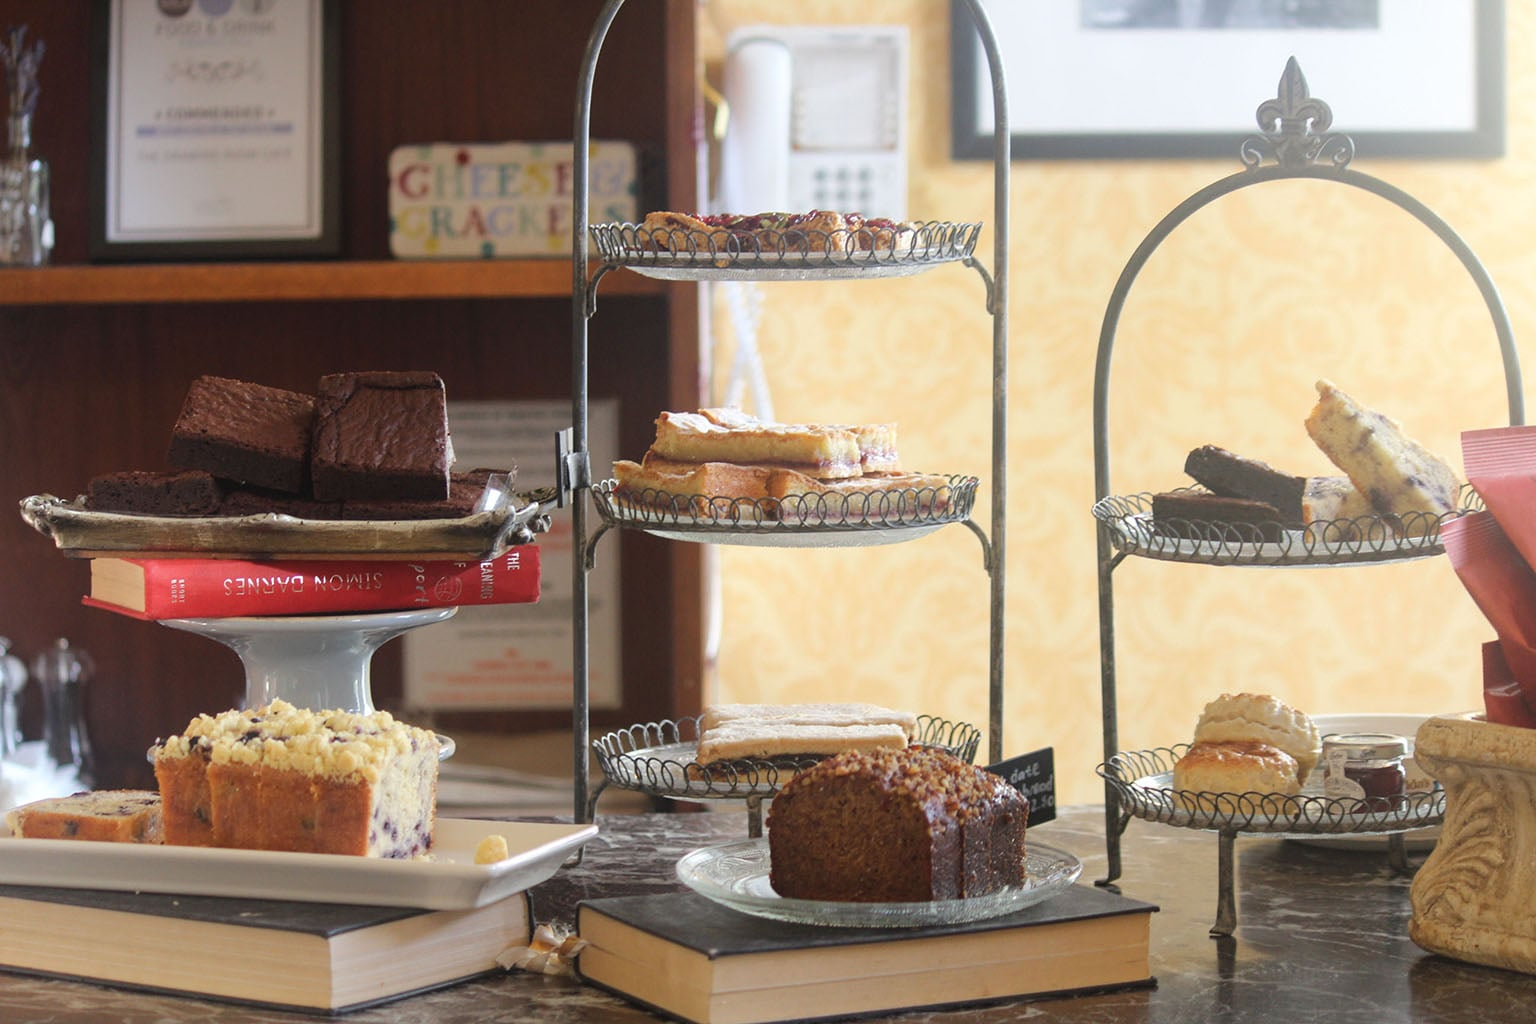 4. The Drawing Room Café, Fulham Palace, London -